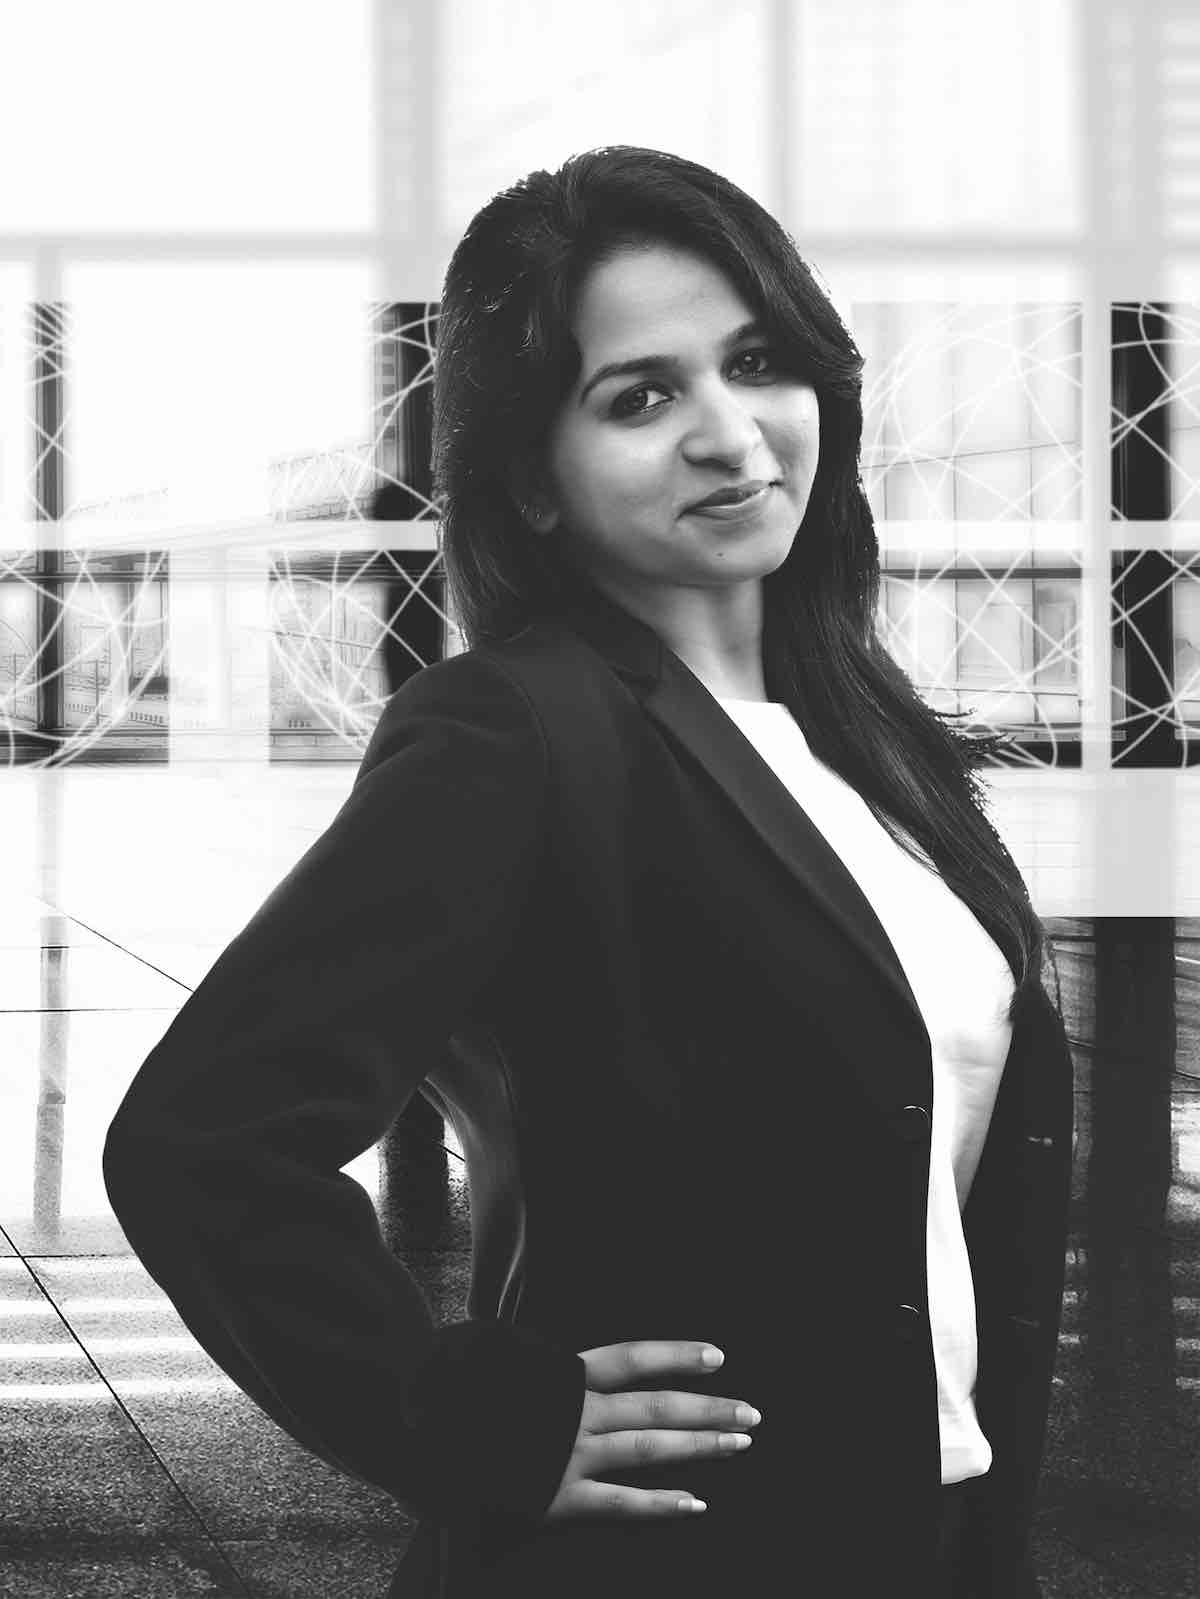 Glander International appoints new Bunker and Lubricant Trader, Ankita Batra